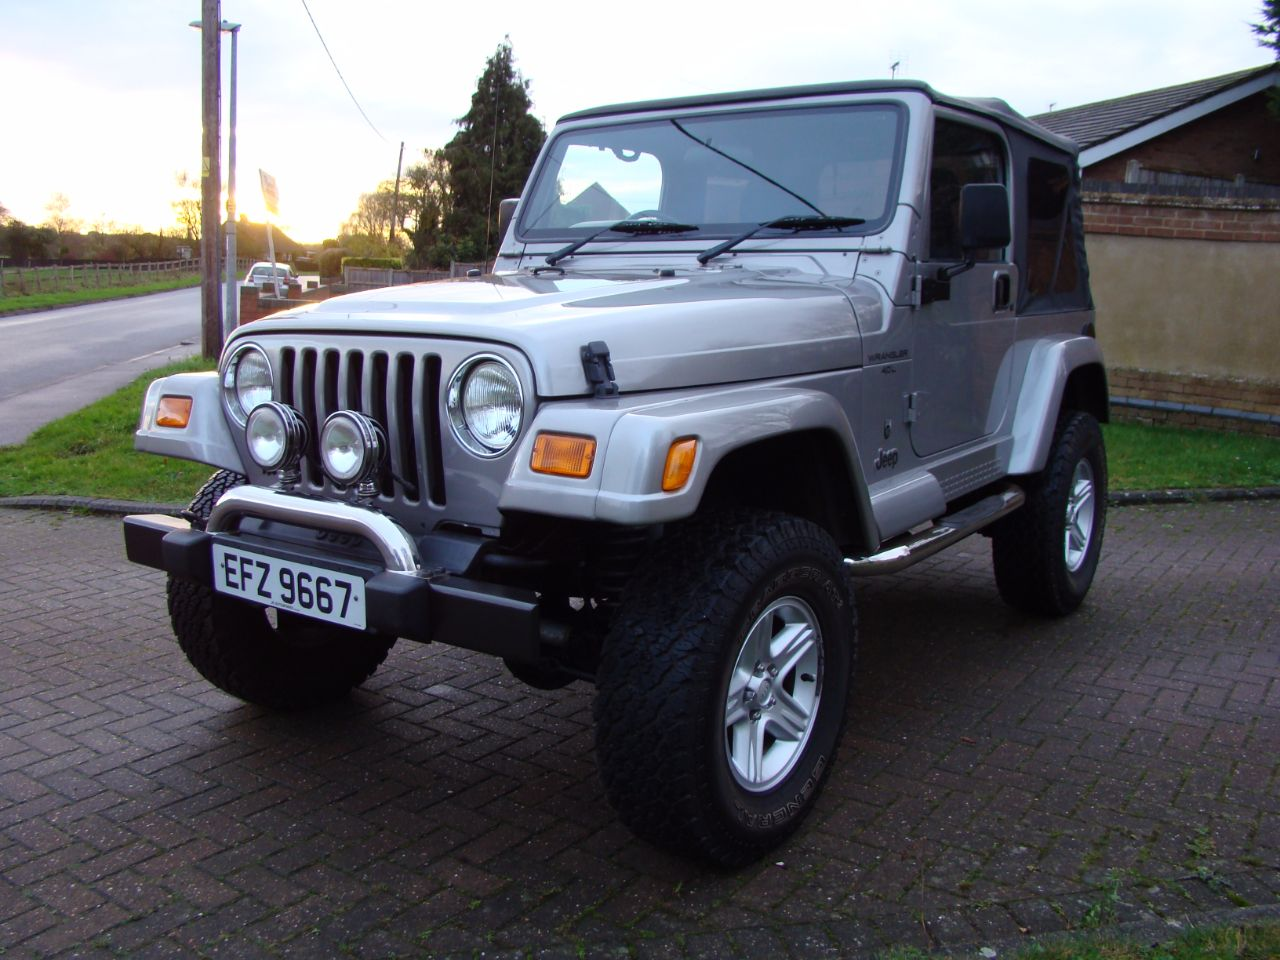 2001 Jeep Wrangler 4.0 60th Anniversary 2dr Soft Top